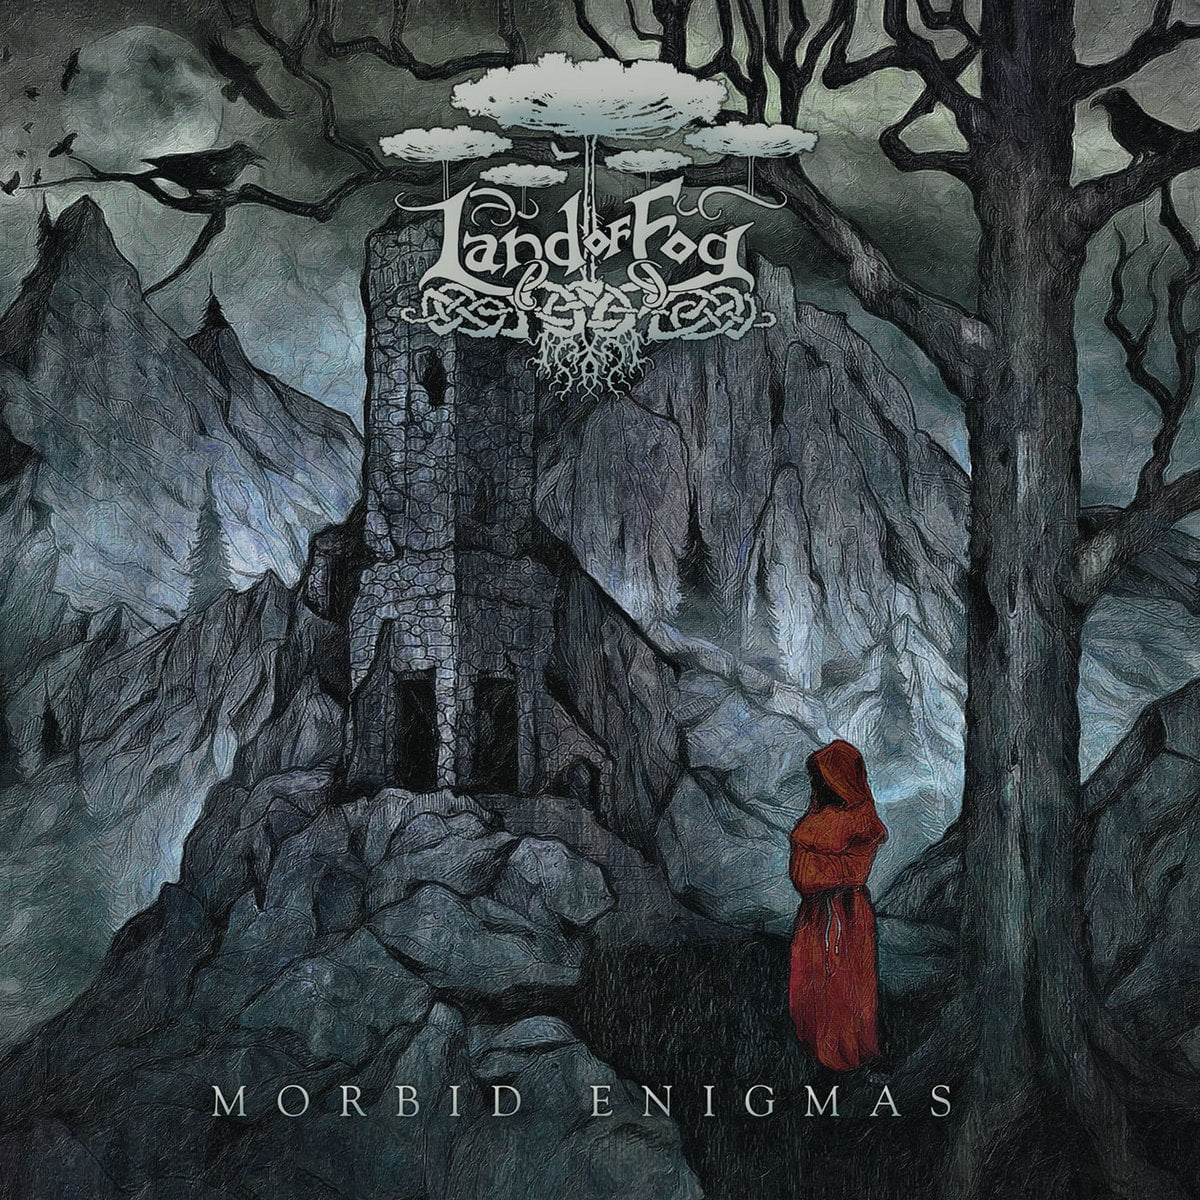 Land of Fog: retorno com lyric video e álbum lançado pela Sulphur Records